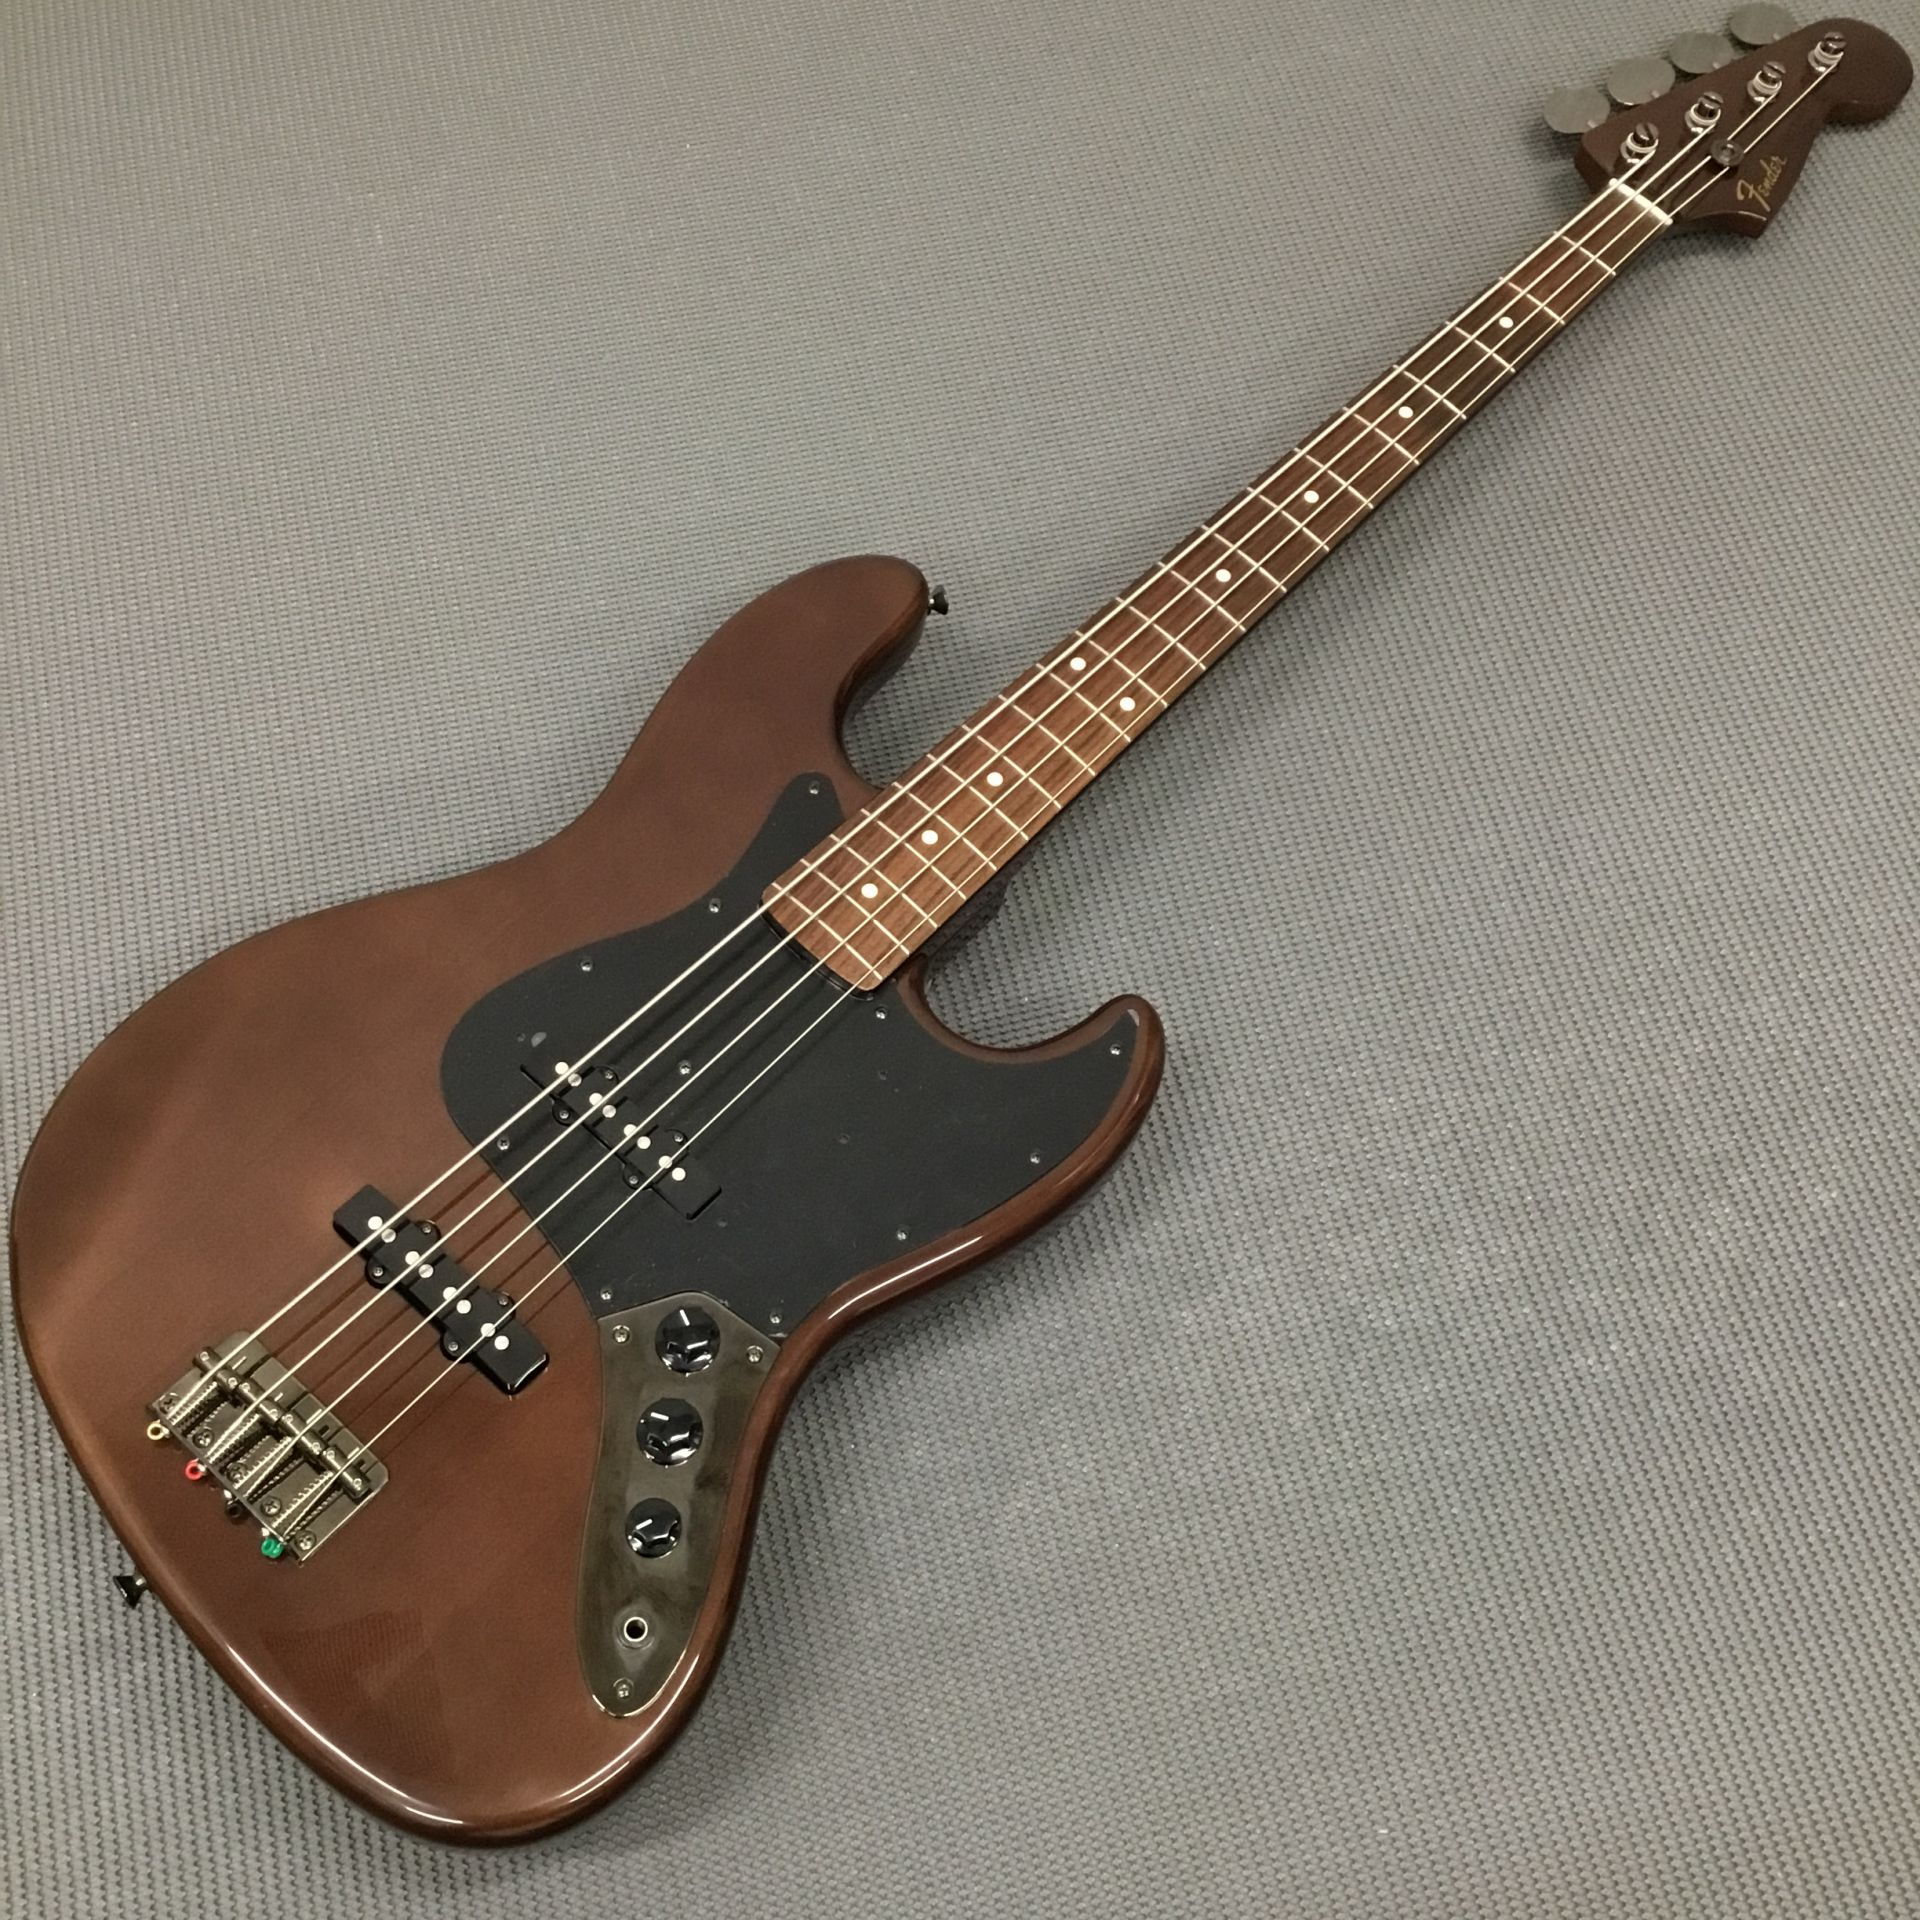 MADE IN JAPAN TRADITIONAL 60S JAZZ BASS WALNUTのボディトップ-アップ画像